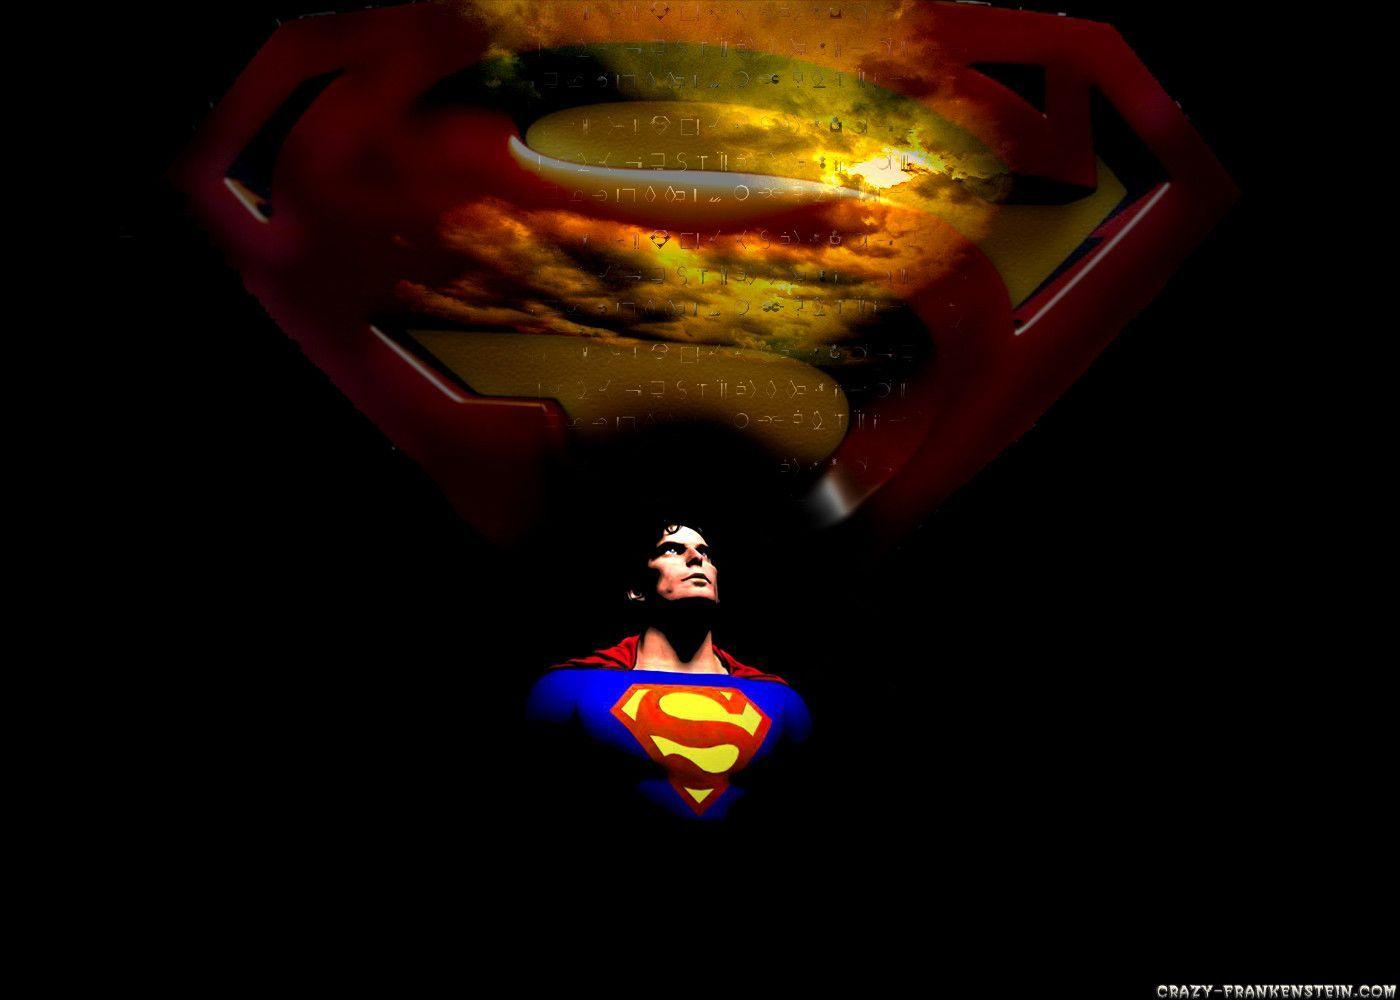 Hd Wallpaper Superman | Black Wallpapers For Desktop